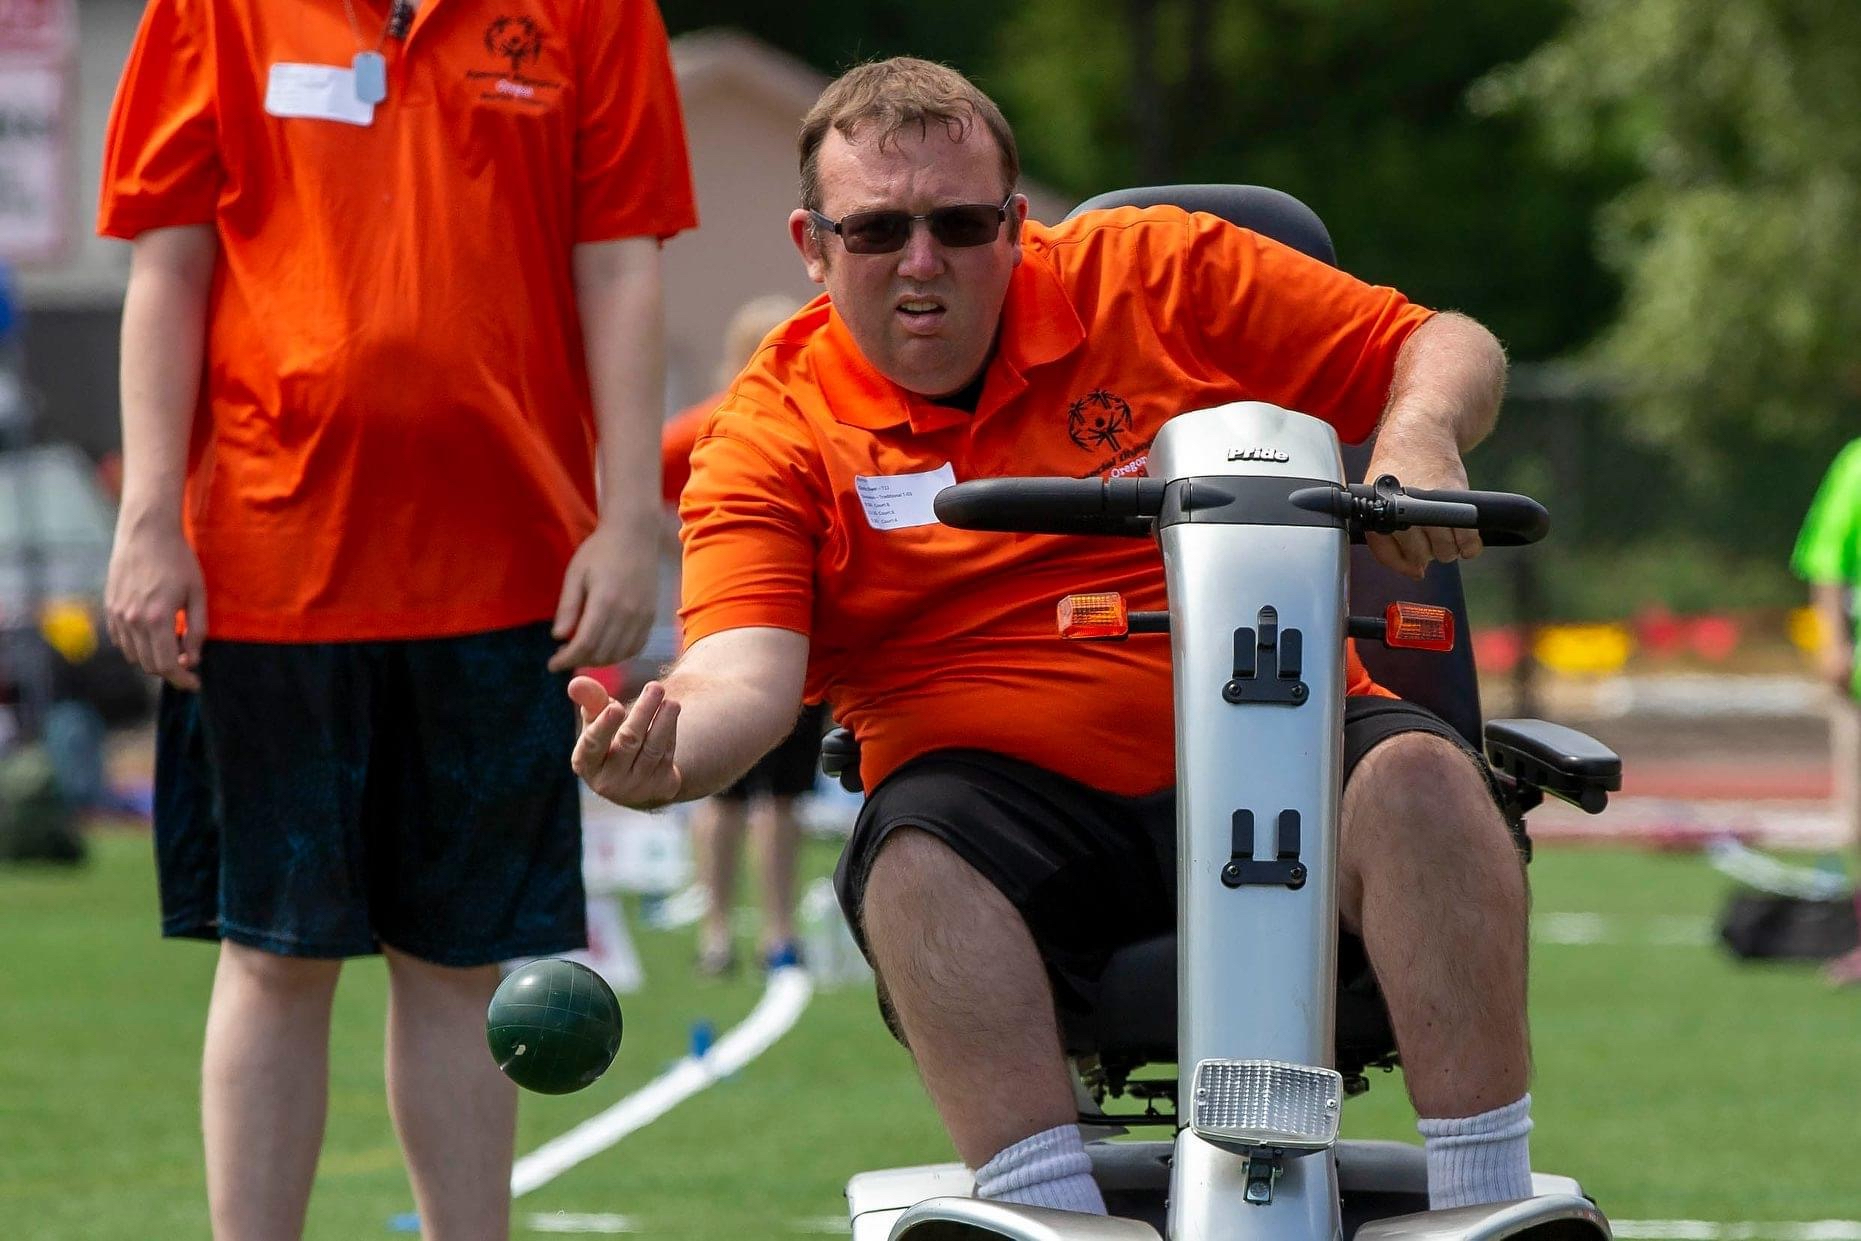 Photo of Chris Dyer competing during Bocce match